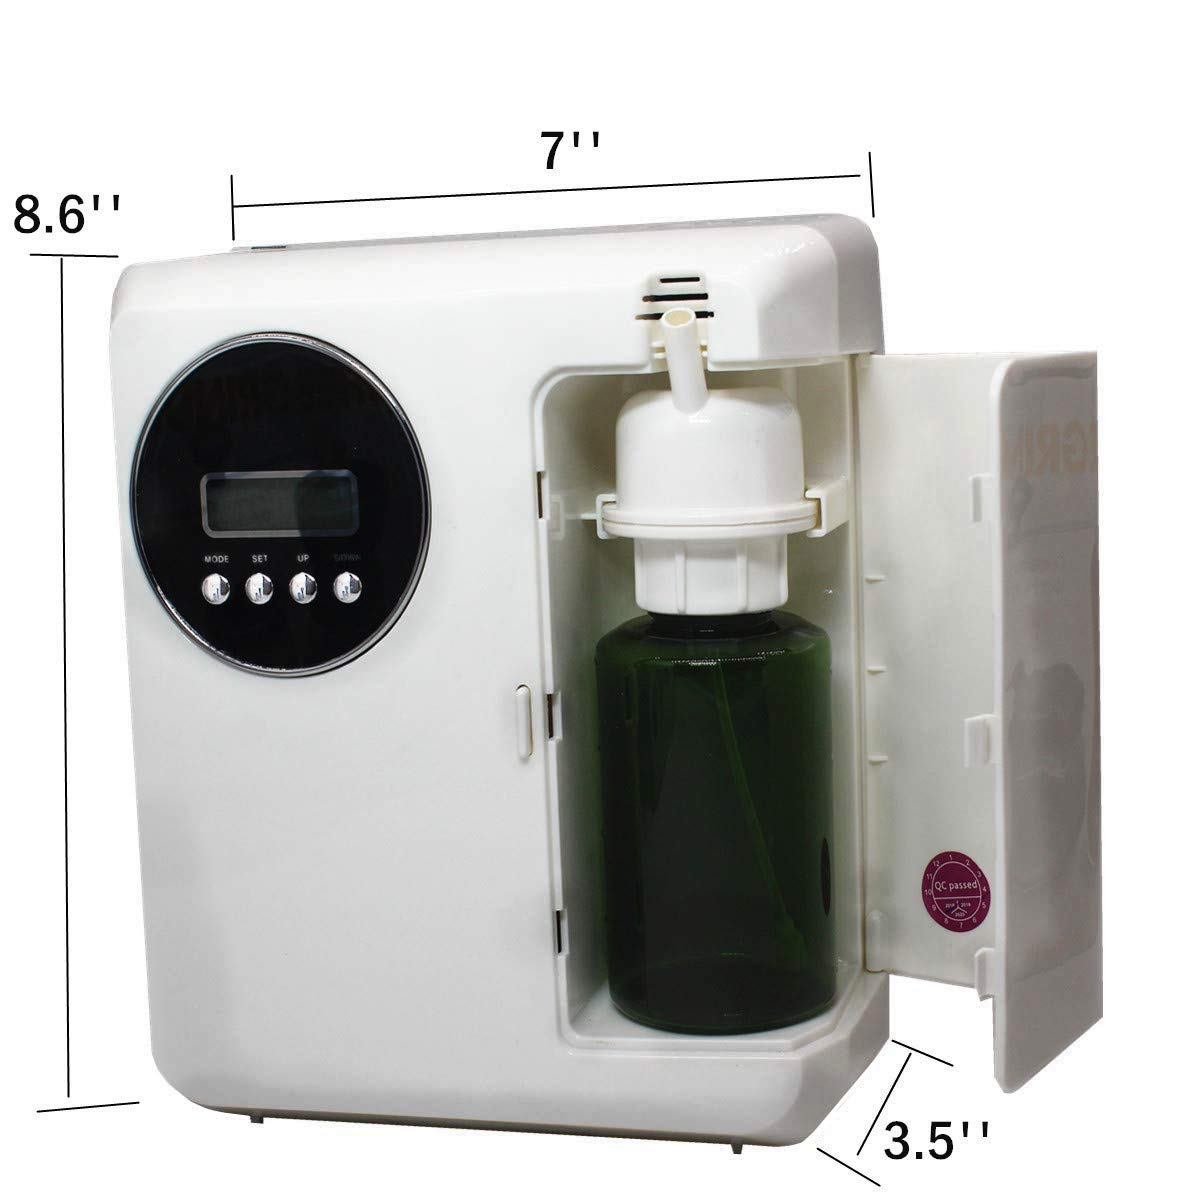 Kevinleo Scent Air Machine Aroma,Video Operation,Waterless,Flexible Work Time(Monday-Sunday),12V USA Plug,150ml Refill Bottle,Stand on Table or Mount on Wall,Fragrance Air Dispenser at Hotel SPA KTV by Kevinleo (Image #8)